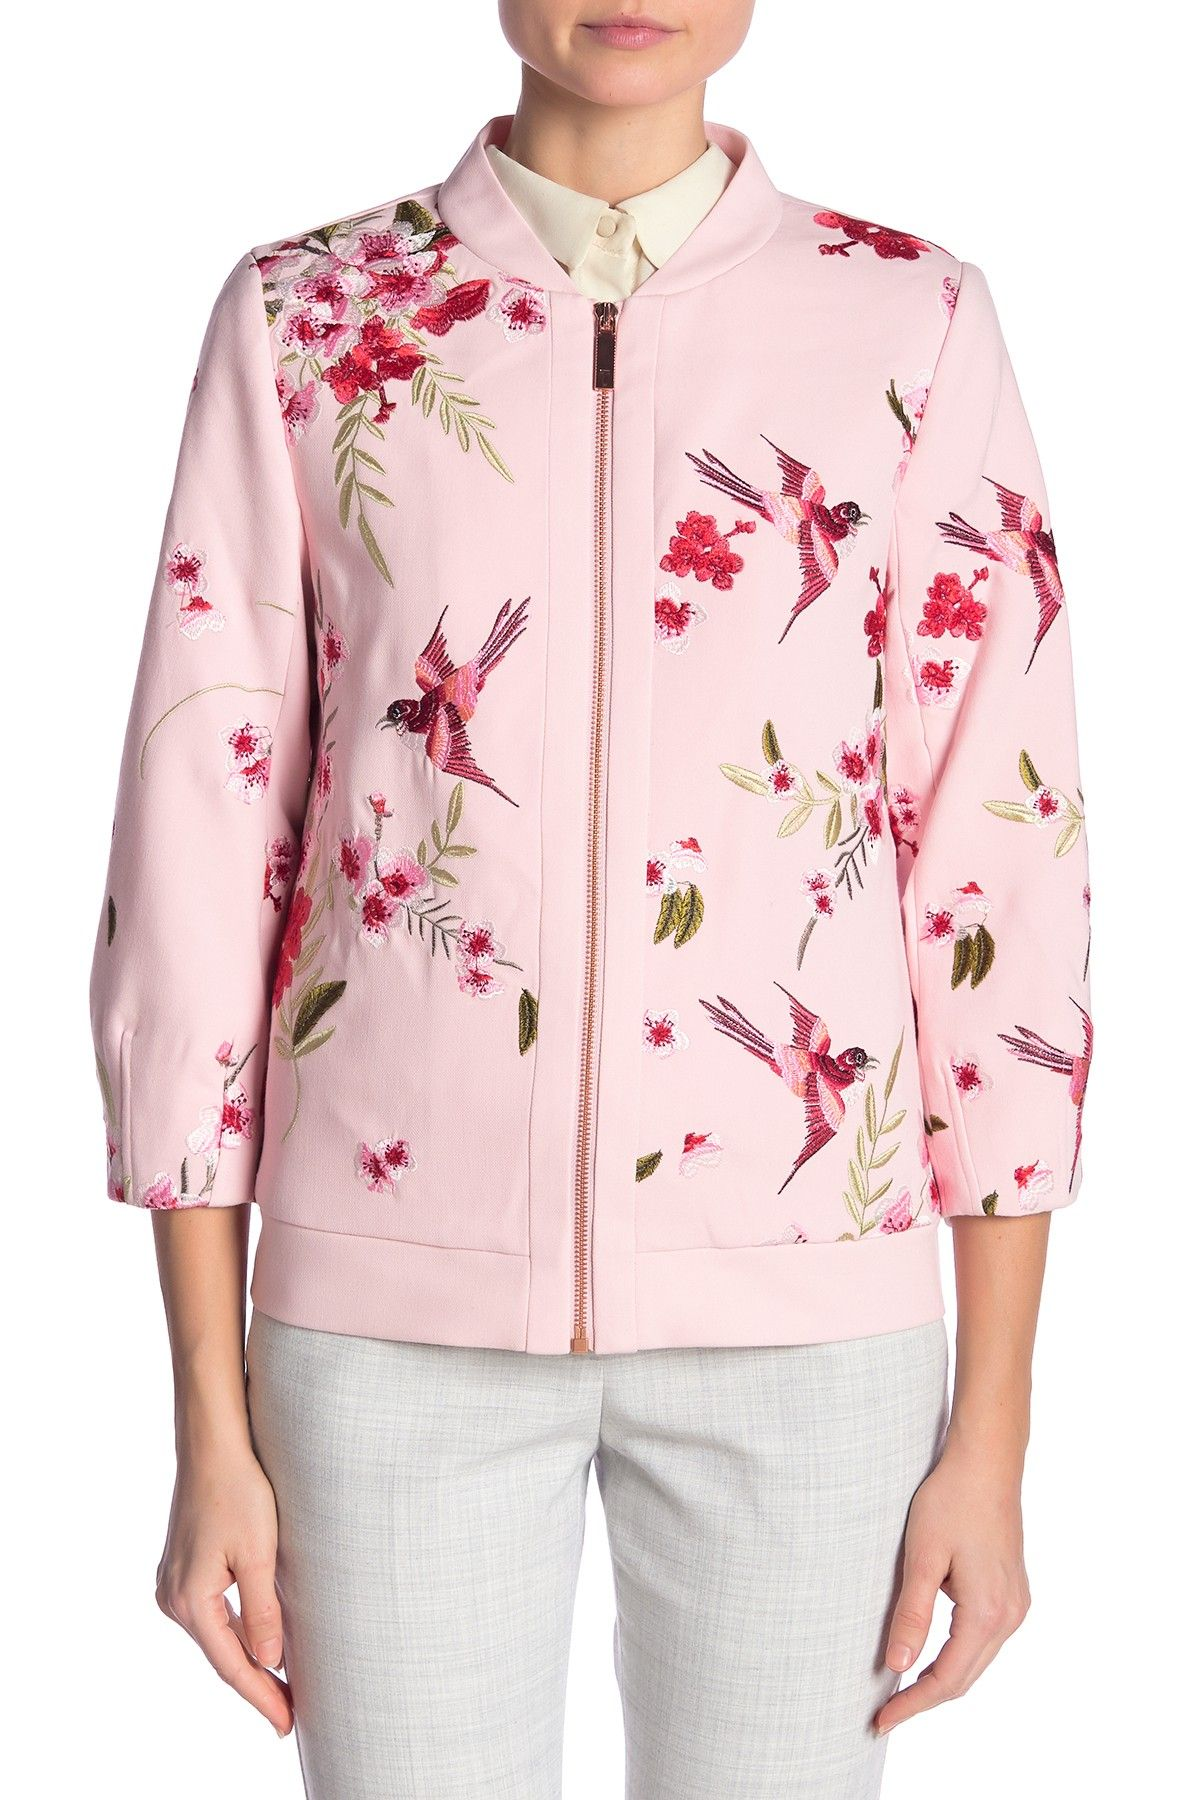 Bird Blossom Spring Bomber Jacket By Ted Baker London Details Intricate Floral Embroidery Beautifies This Trendy Bomber Jacket Fit This Style Fits True T [ 1800 x 1200 Pixel ]